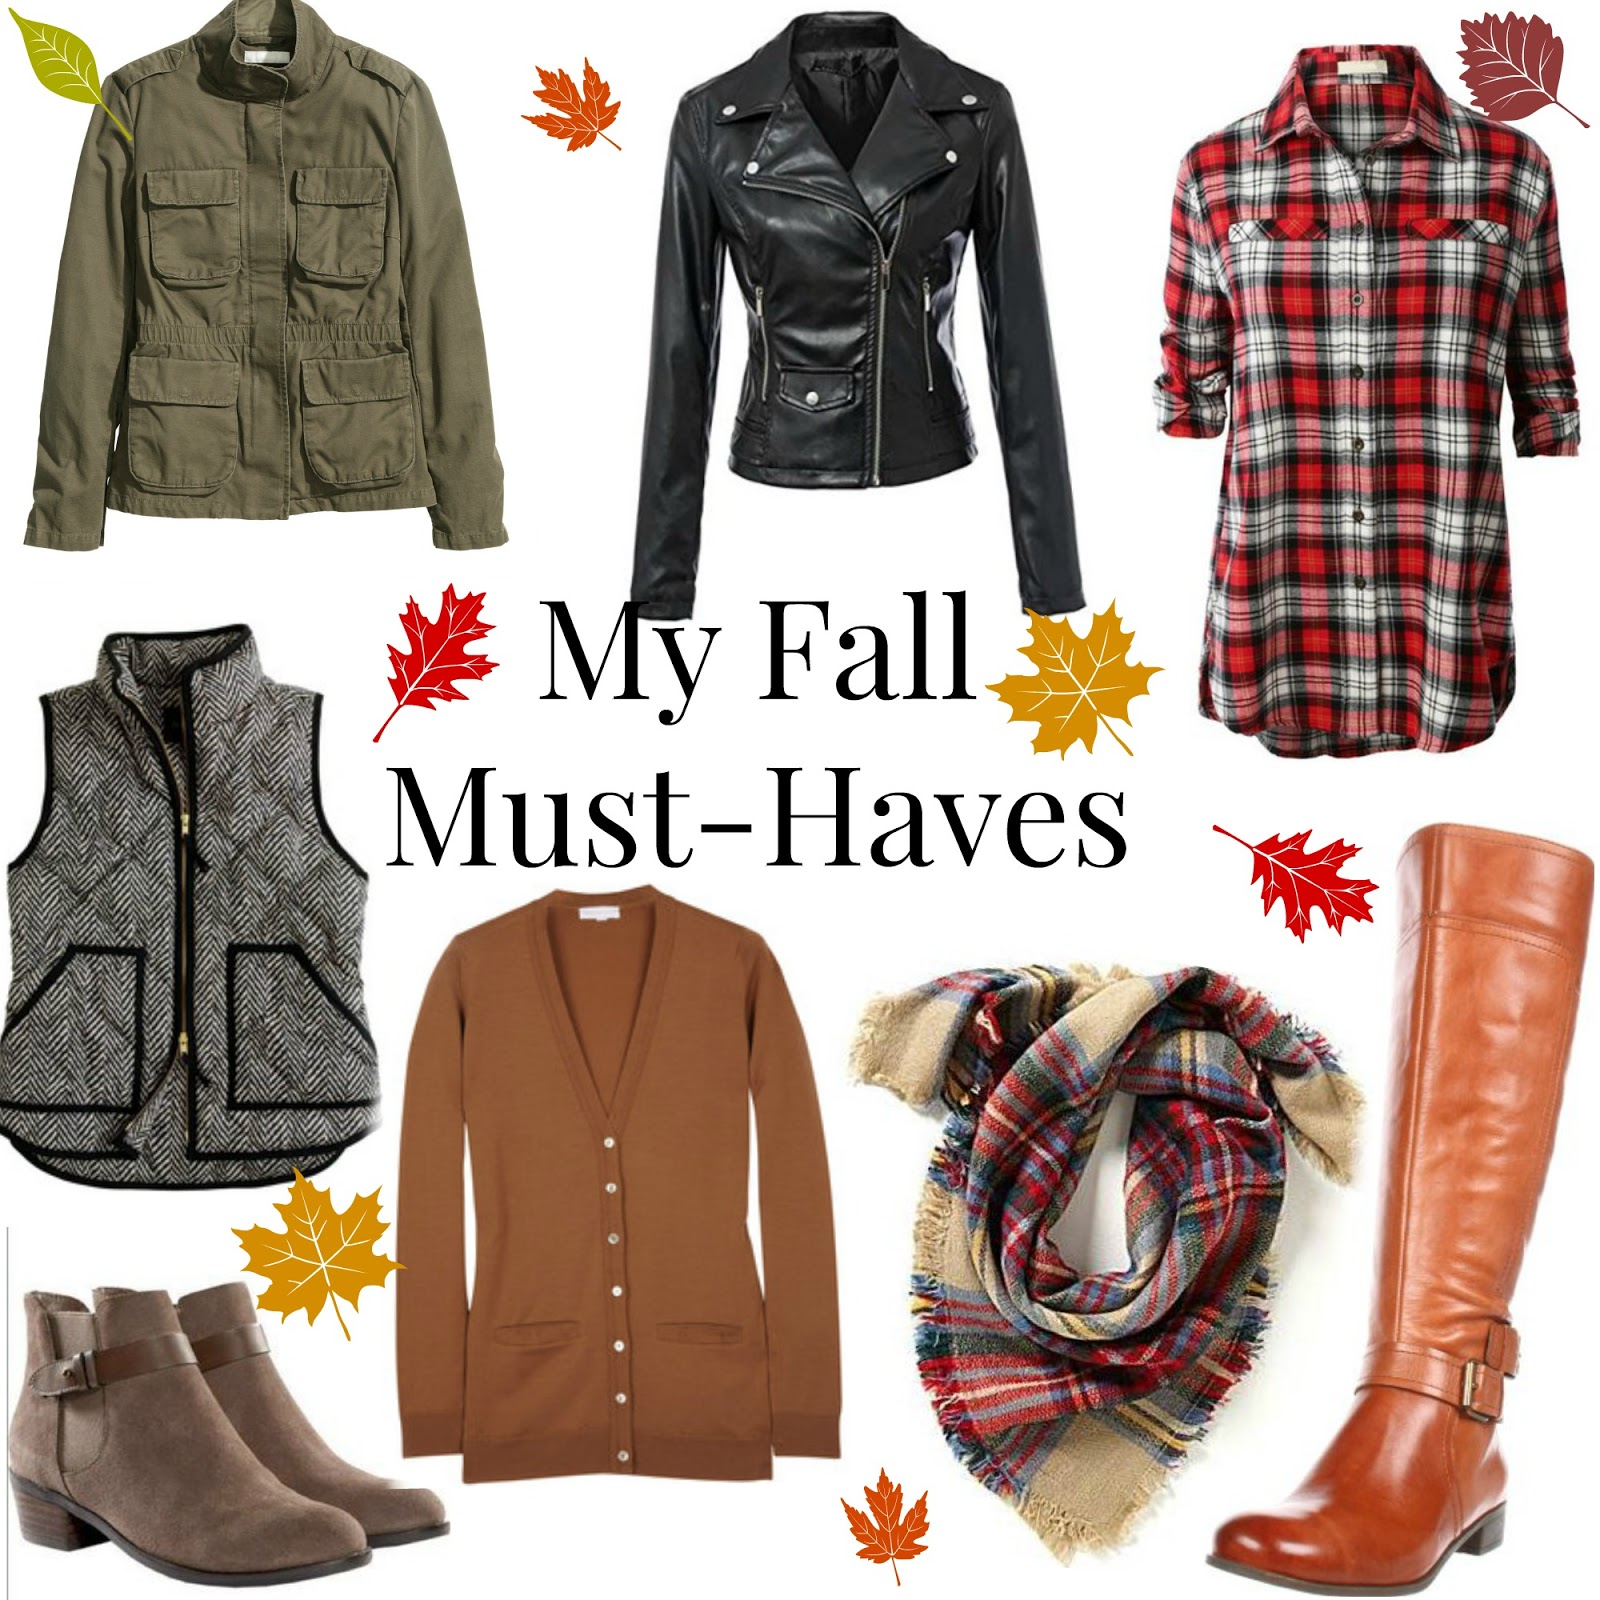 plaid button up, houndstooth vest, cargo jacket, field jacket, camel cardigan, moto jacket, blanket scarf, riding boots, booties